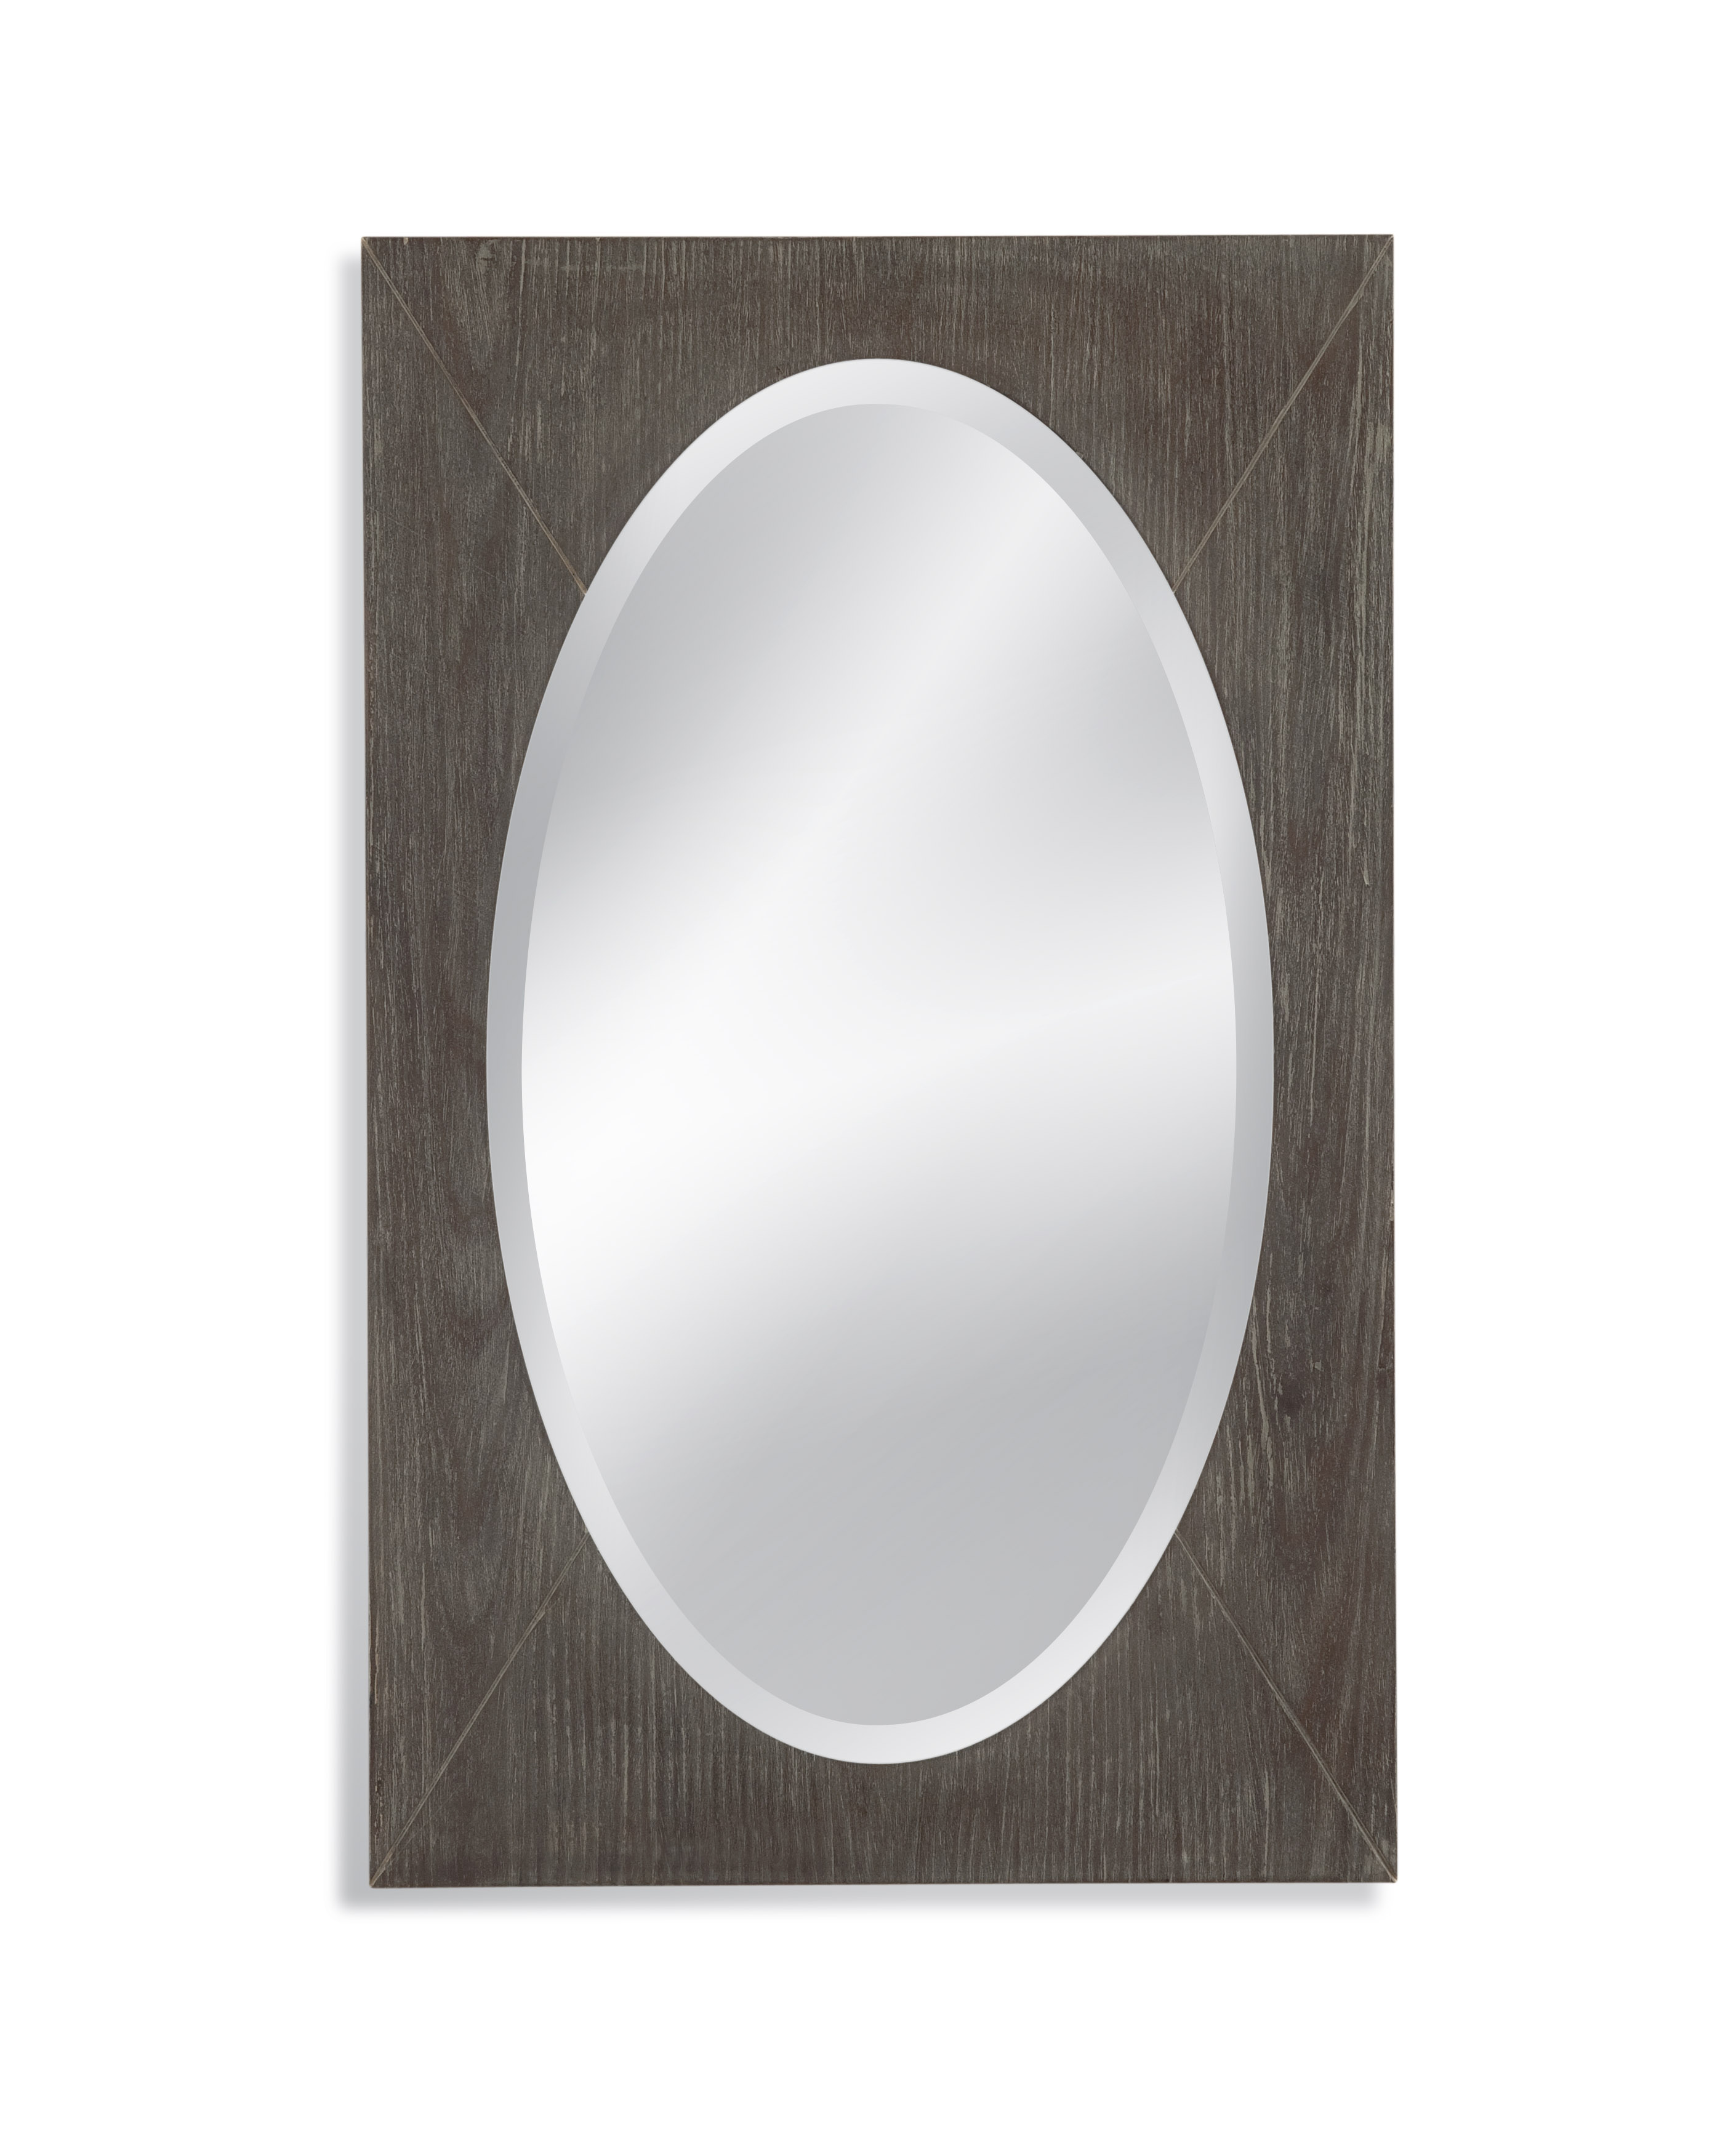 Thoroughly Modern Shelby Wall Mirror by Bassett Mirror at Alison Craig Home Furnishings